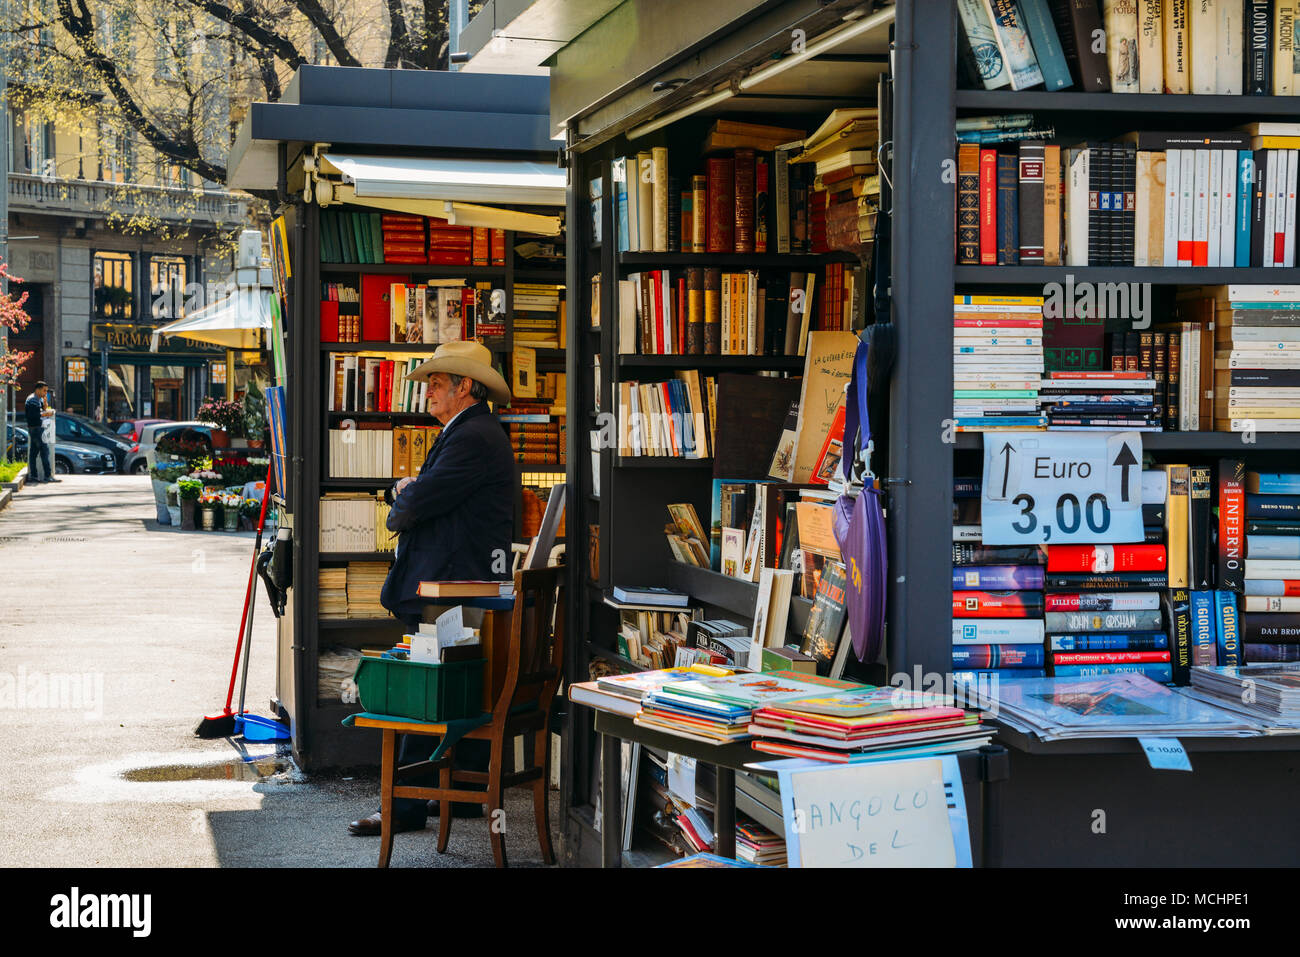 milan-italy-april-14-2018-an-older-man-with-a-cowboy-hat-sells-books-on-the-street-MCHPE1.jpg